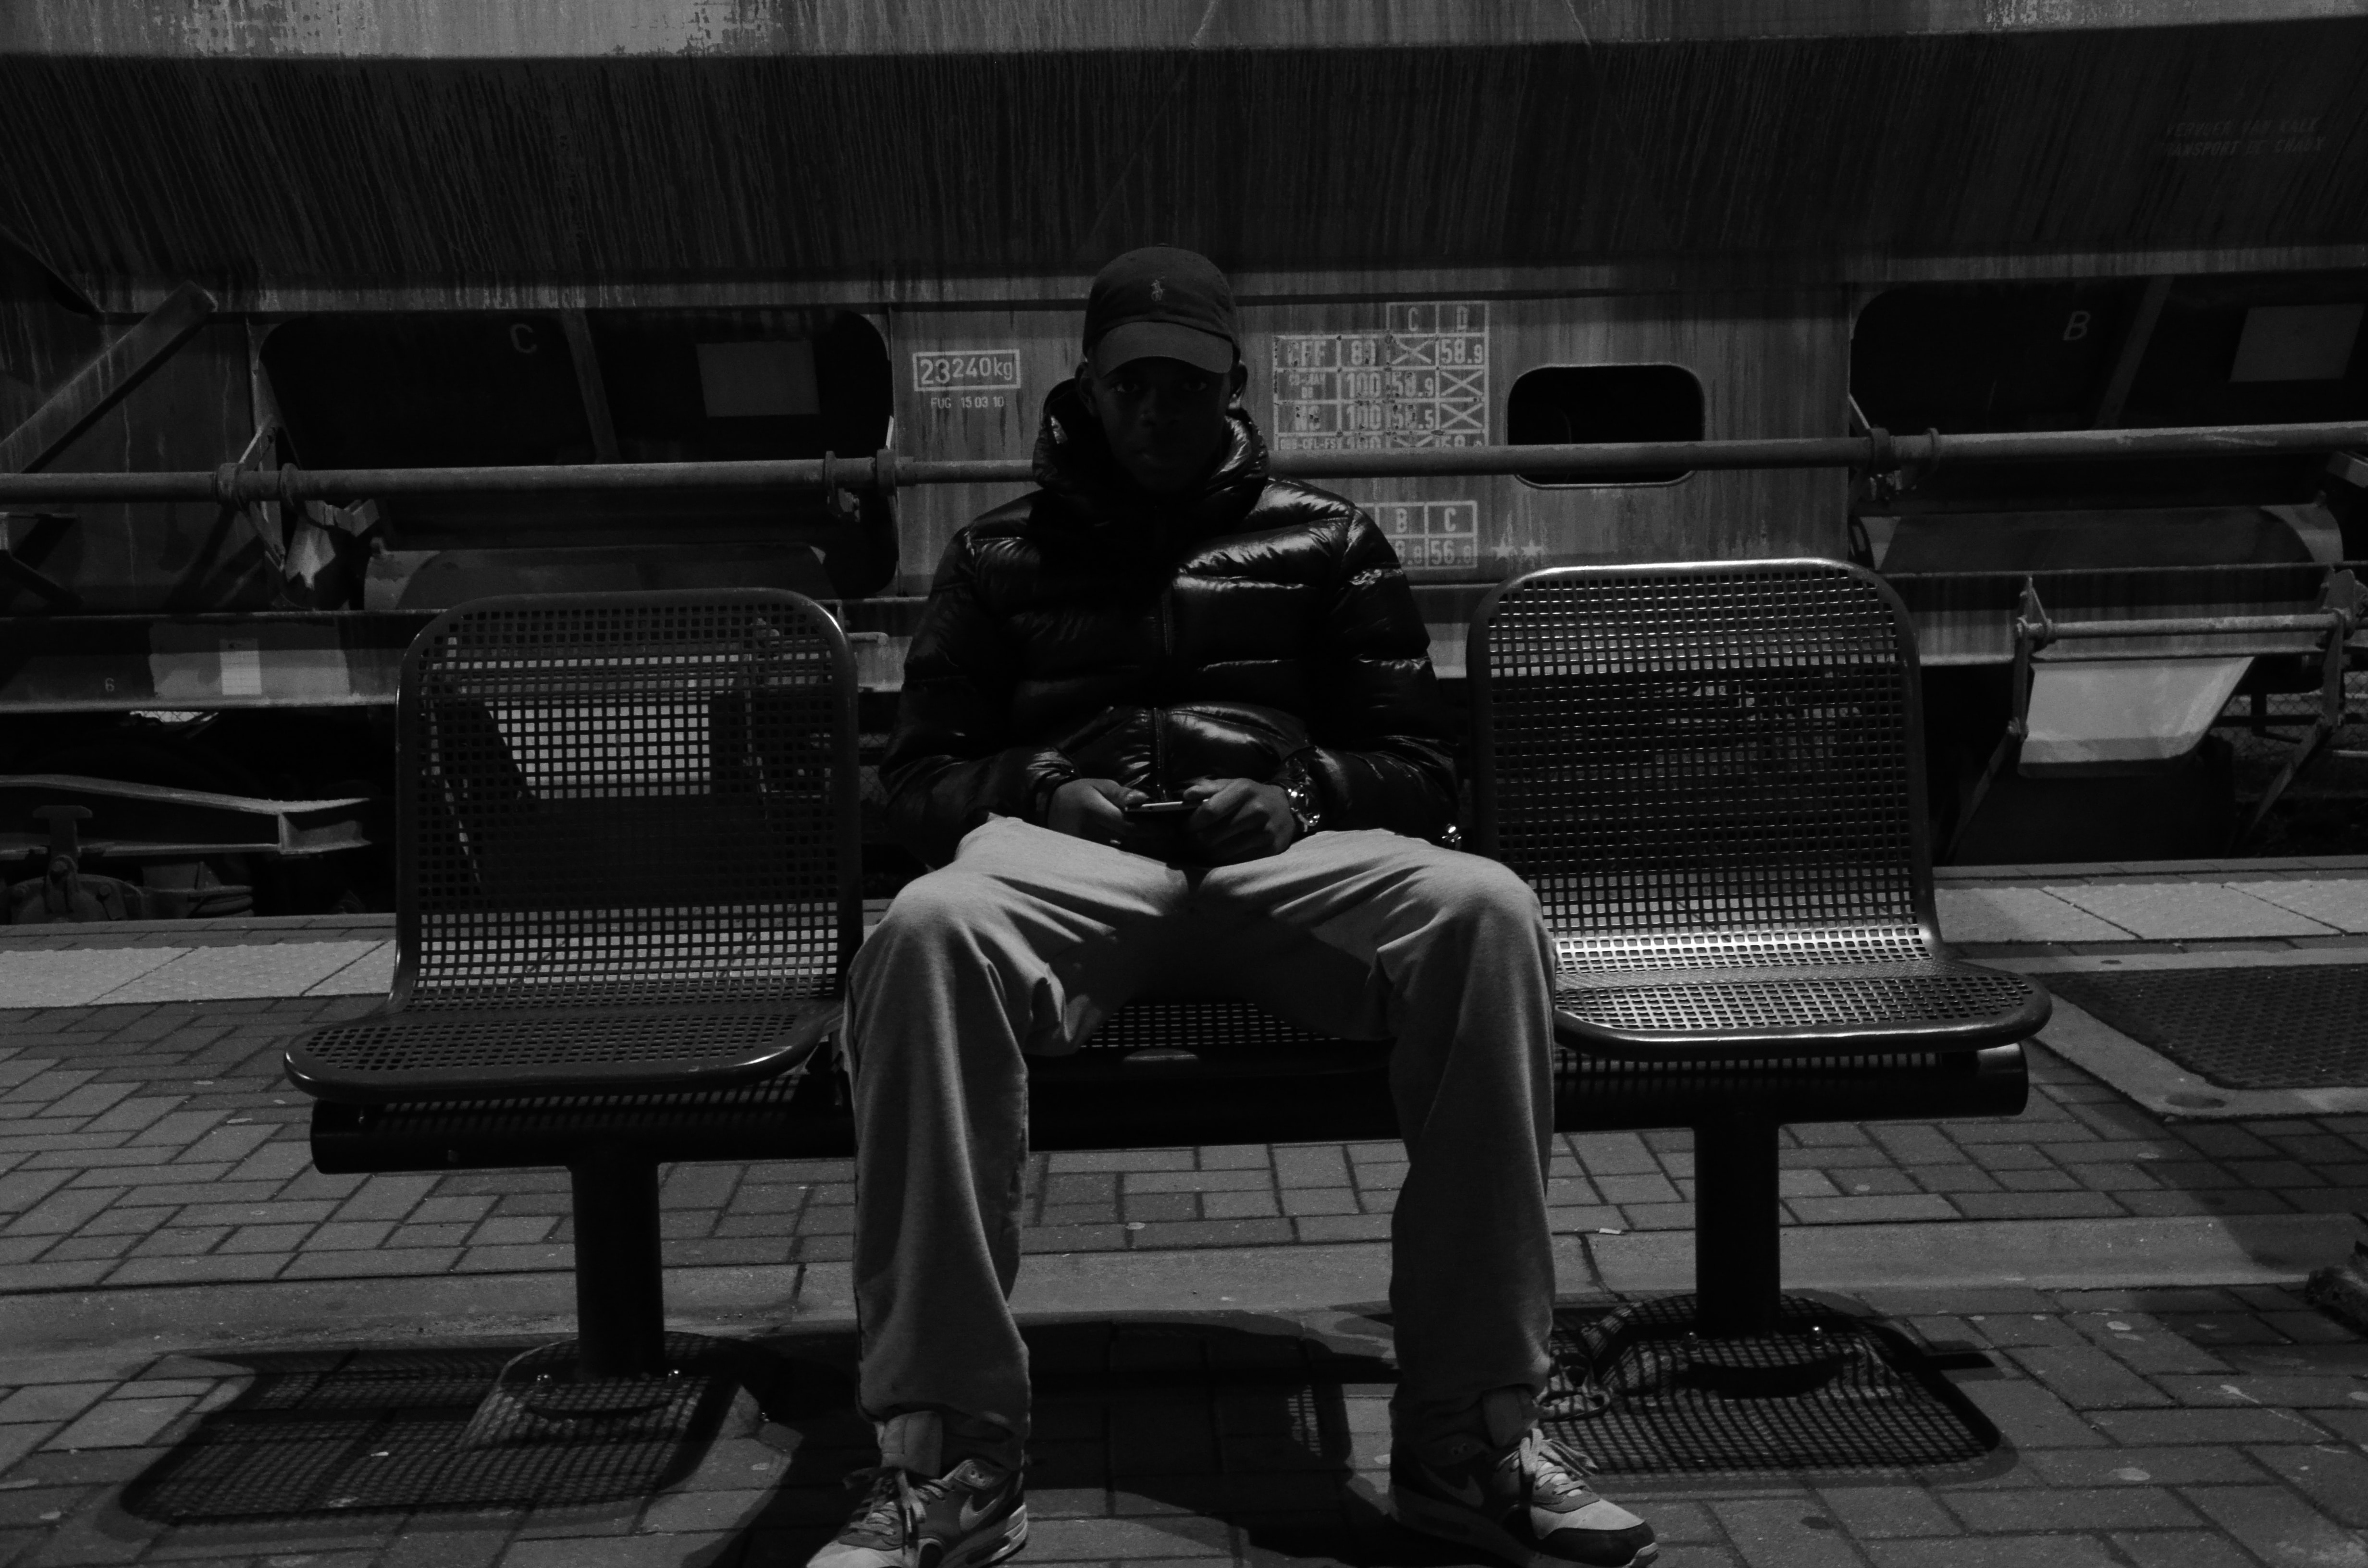 grayscale photography of man sitting down on metal bench